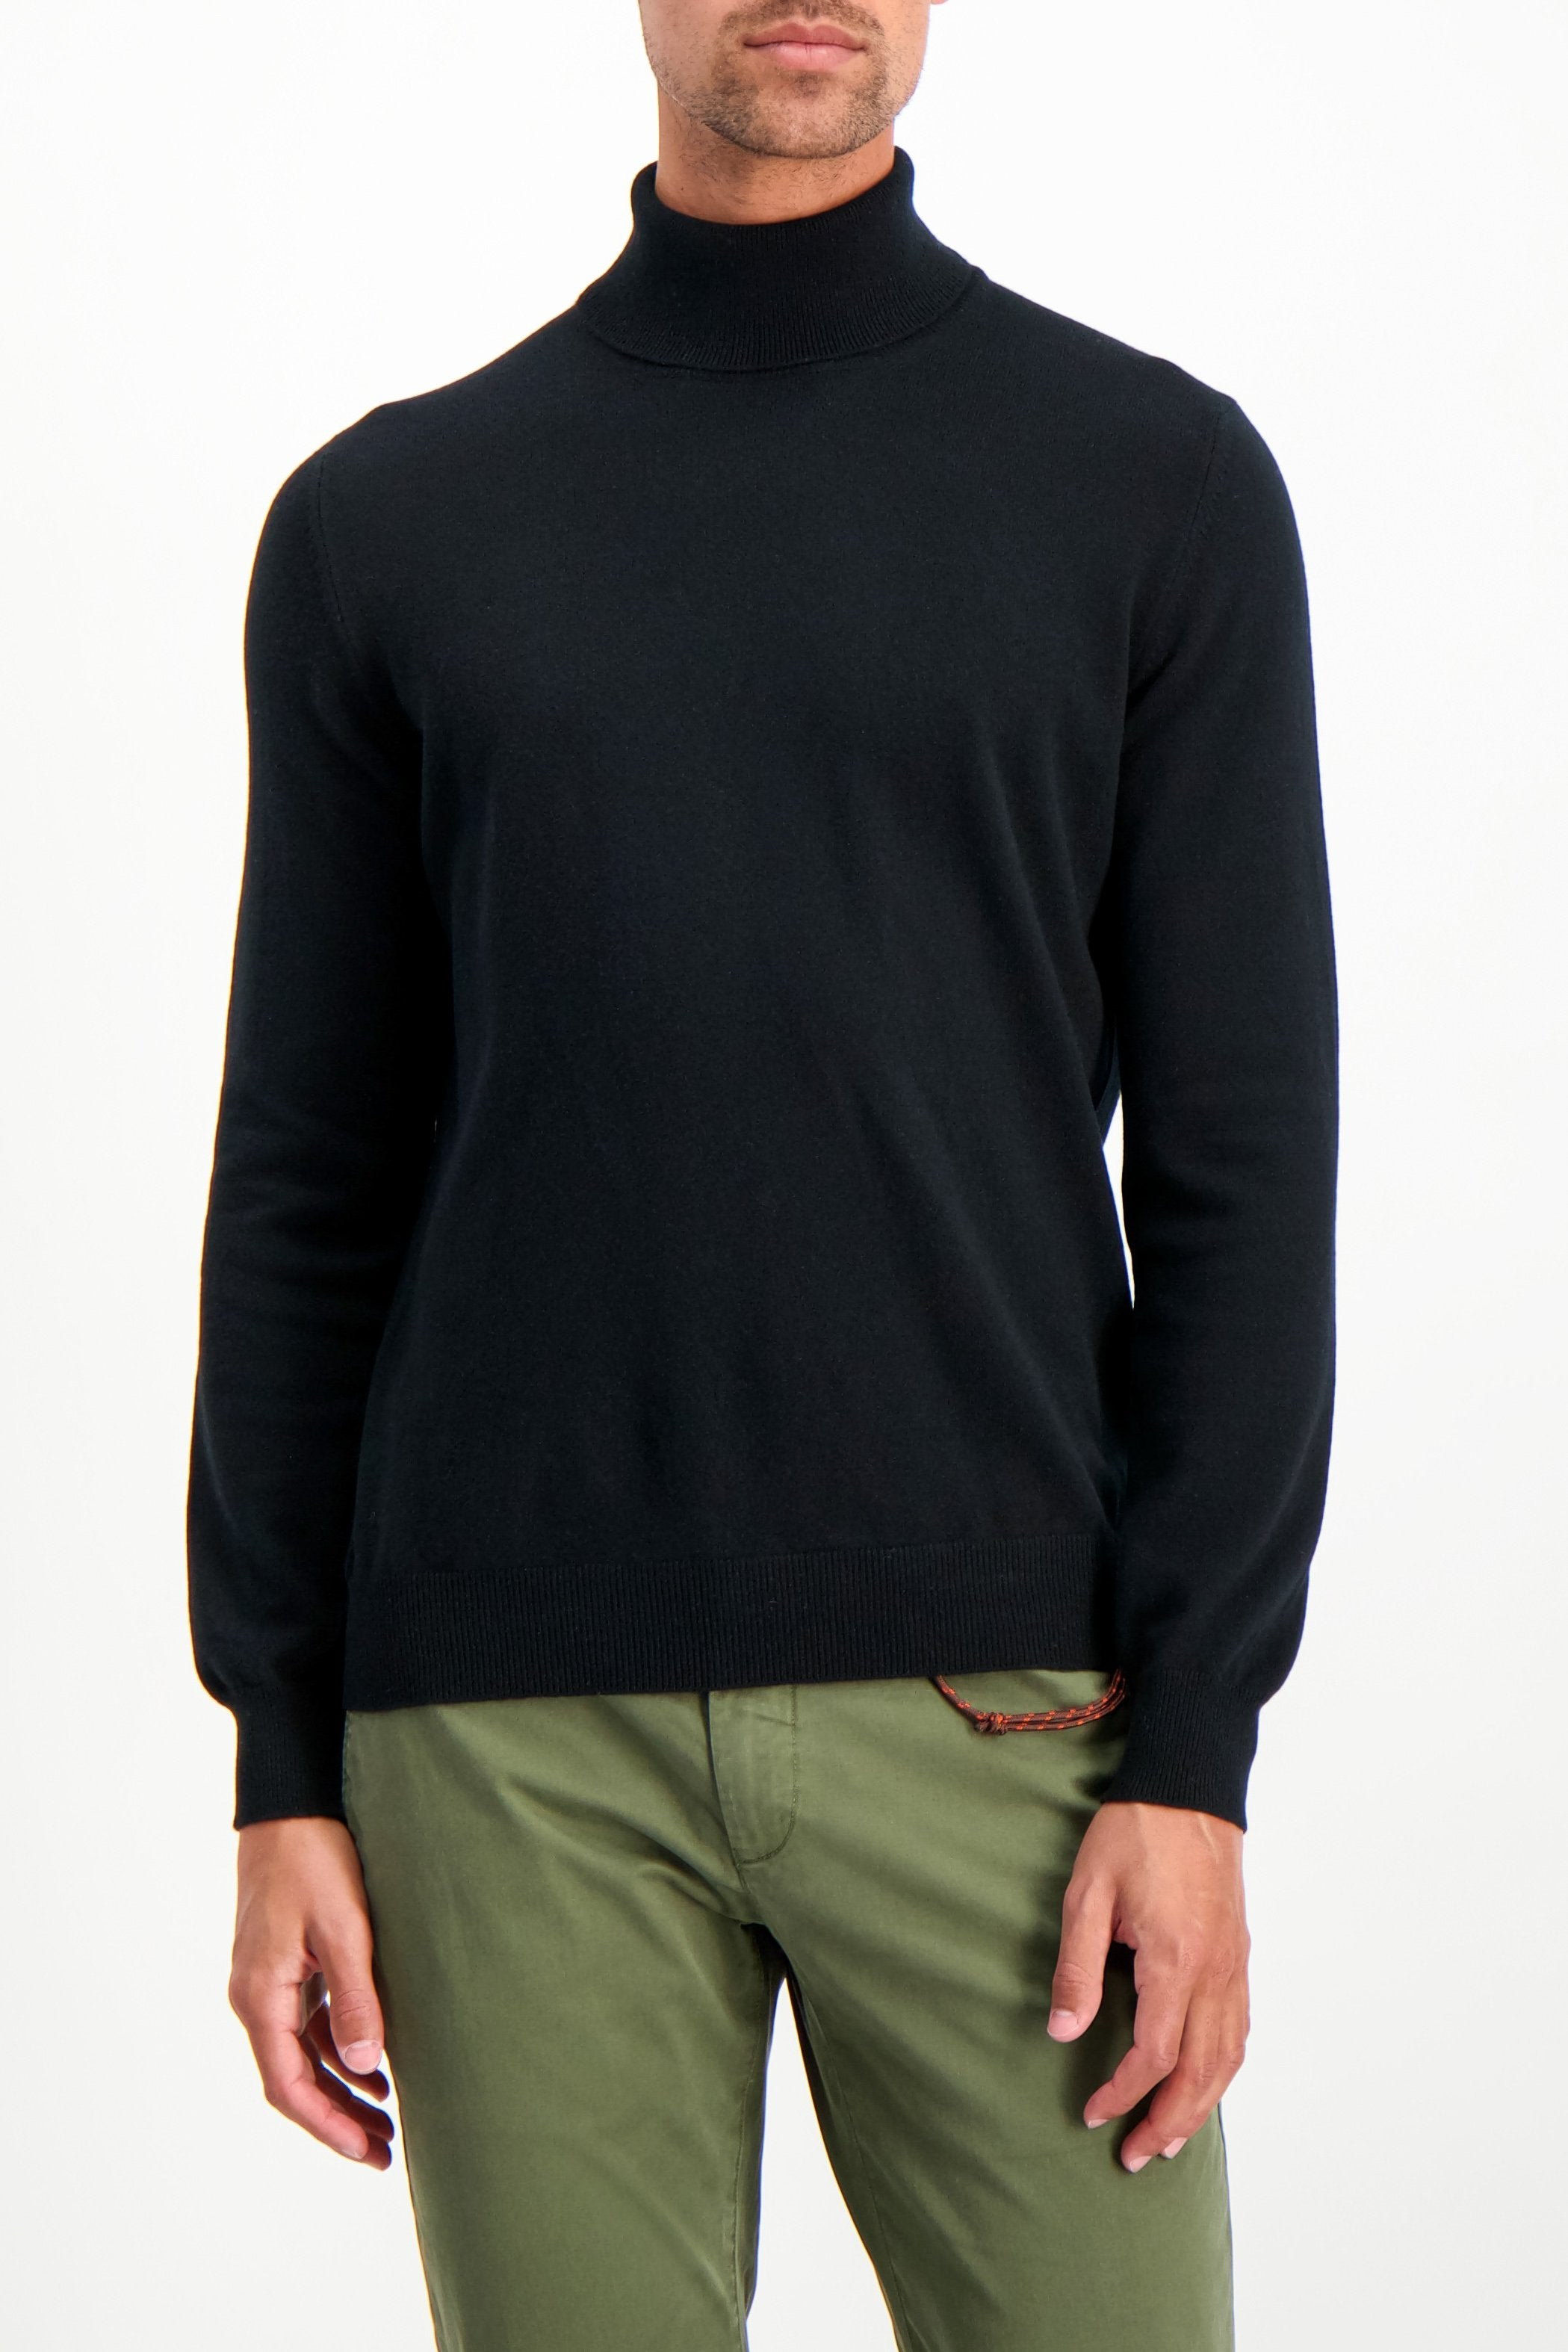 Front Crop Image Of Model Wearing Gran Sasso Turtleneck Sweater Black